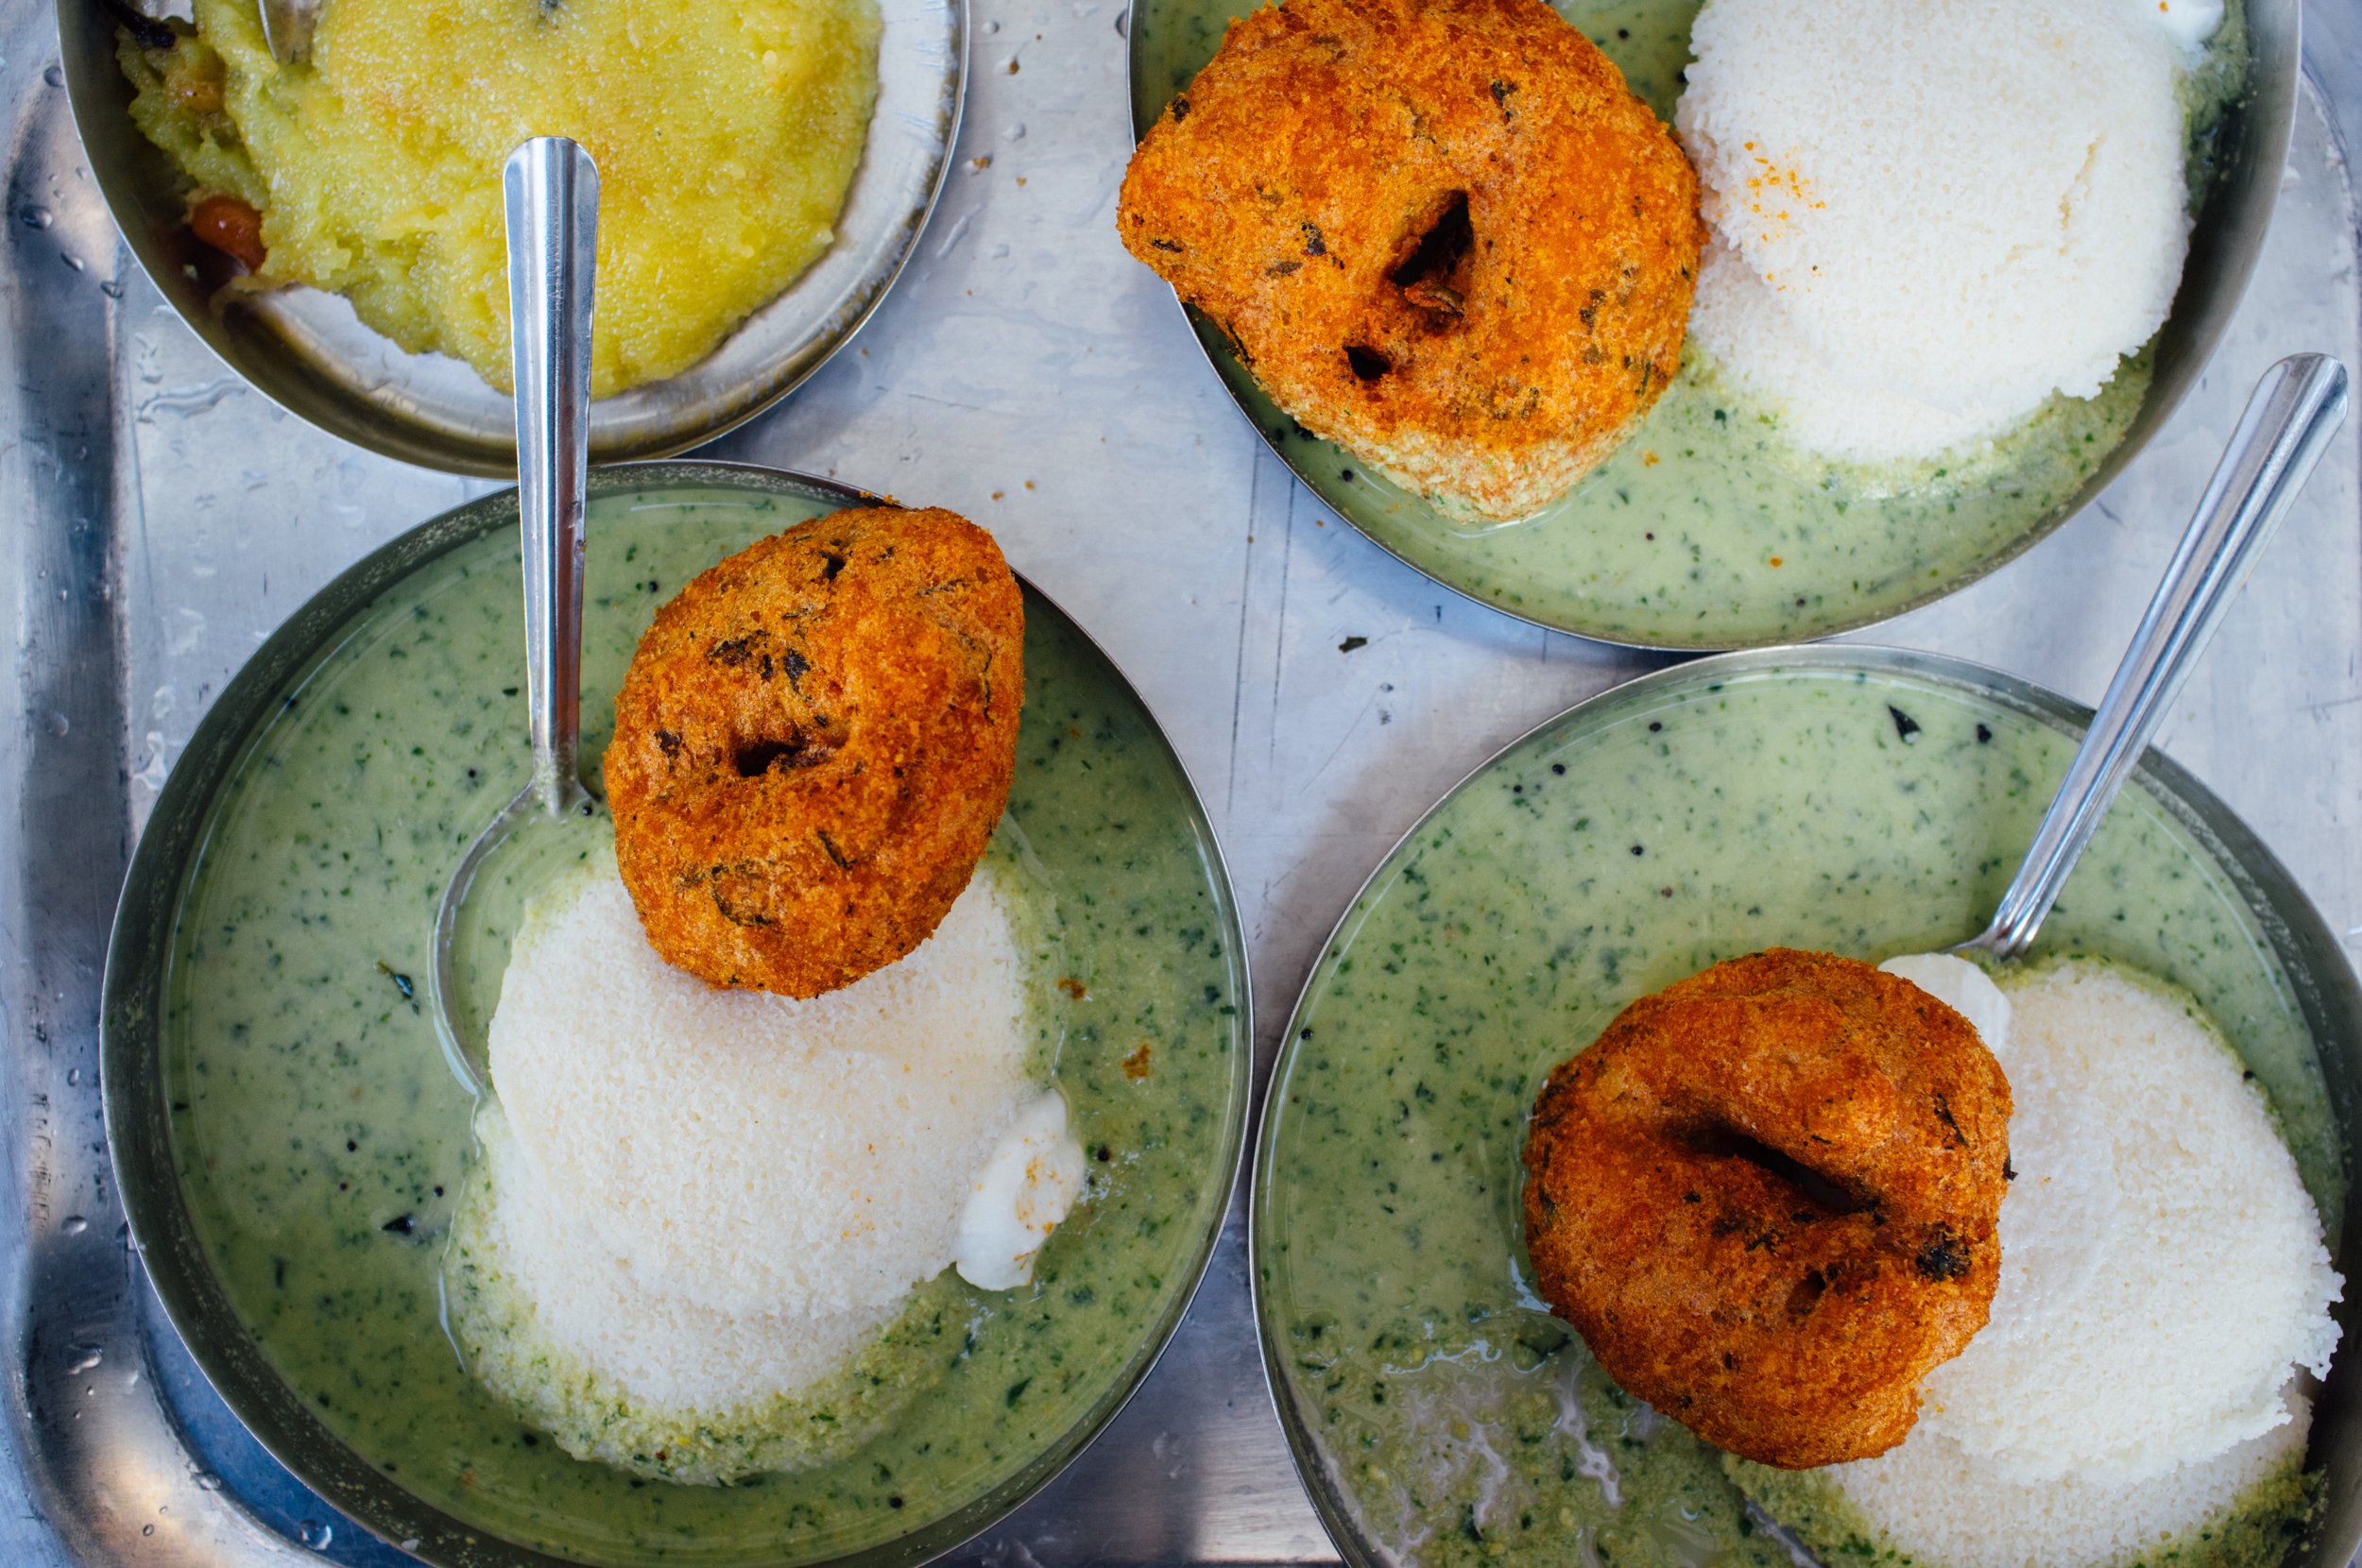 Idli  and  Vade  at Brahmin's in Bangalore. Note the dollop of homemade butter on every plate.